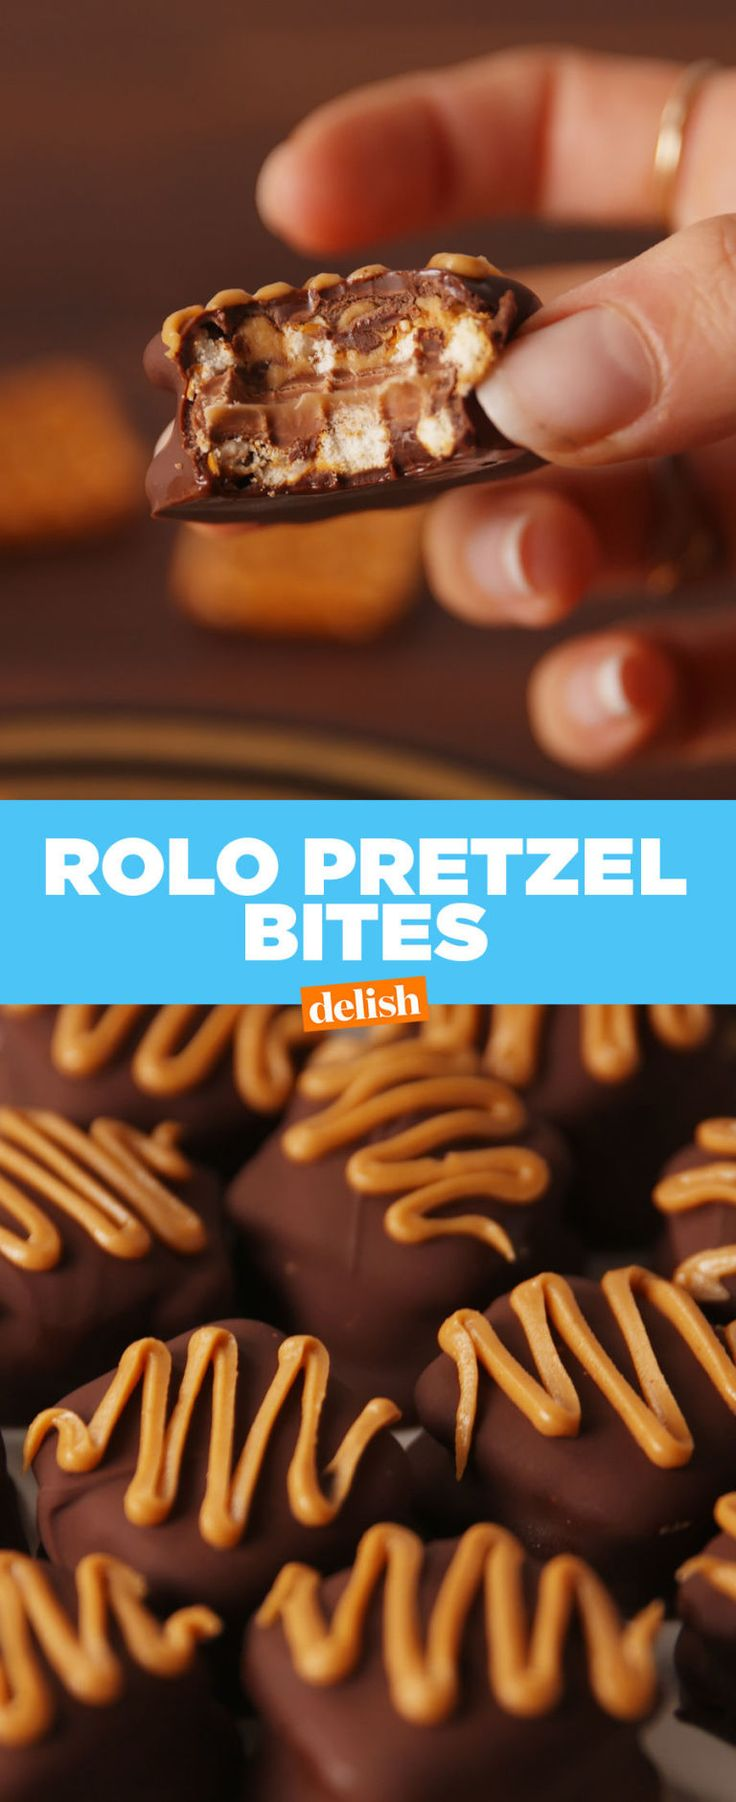 Caramel Lovers: These Rolo Pretzel Bites Are Your New Obsession